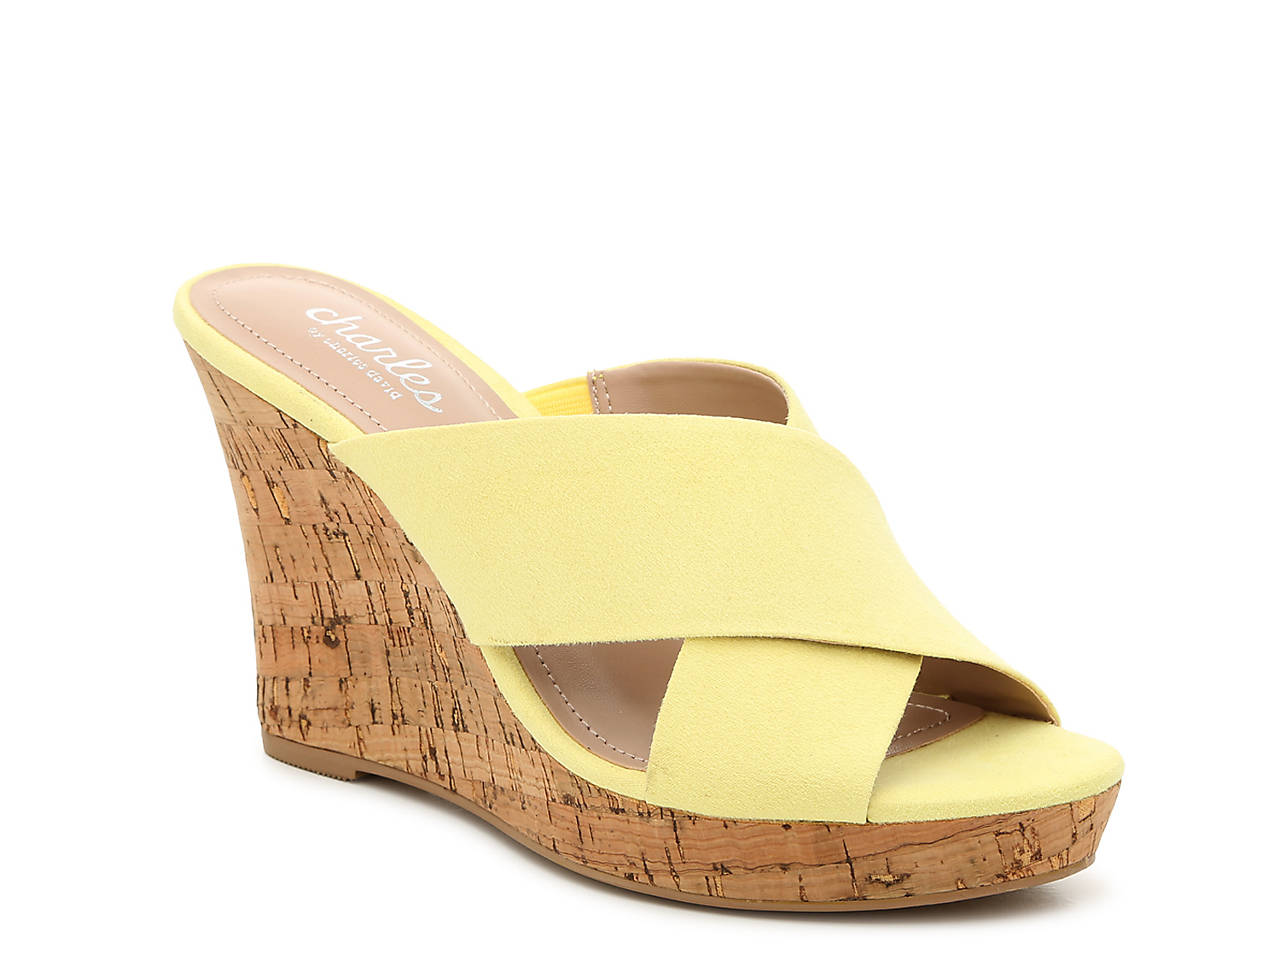 76a2e322b8 Charles by Charles David Latrice Wedge Sandal Women's Shoes | DSW